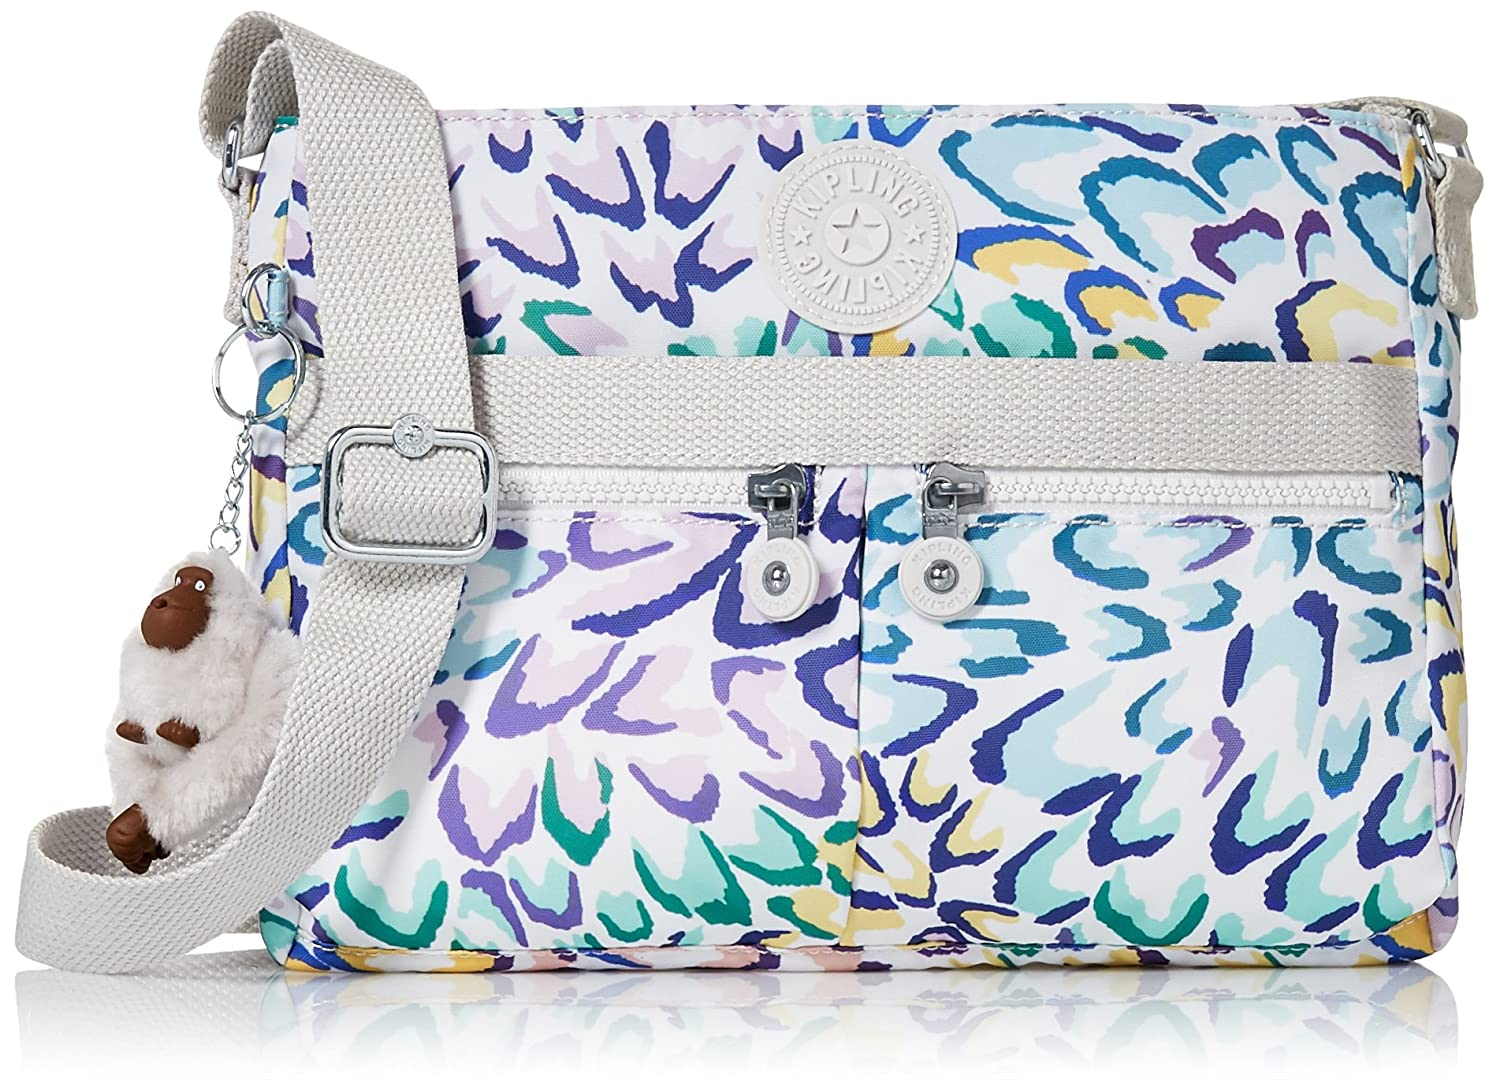 367e323884f8 Kipling Women s Angie Solid Convertible Crossbody Bag